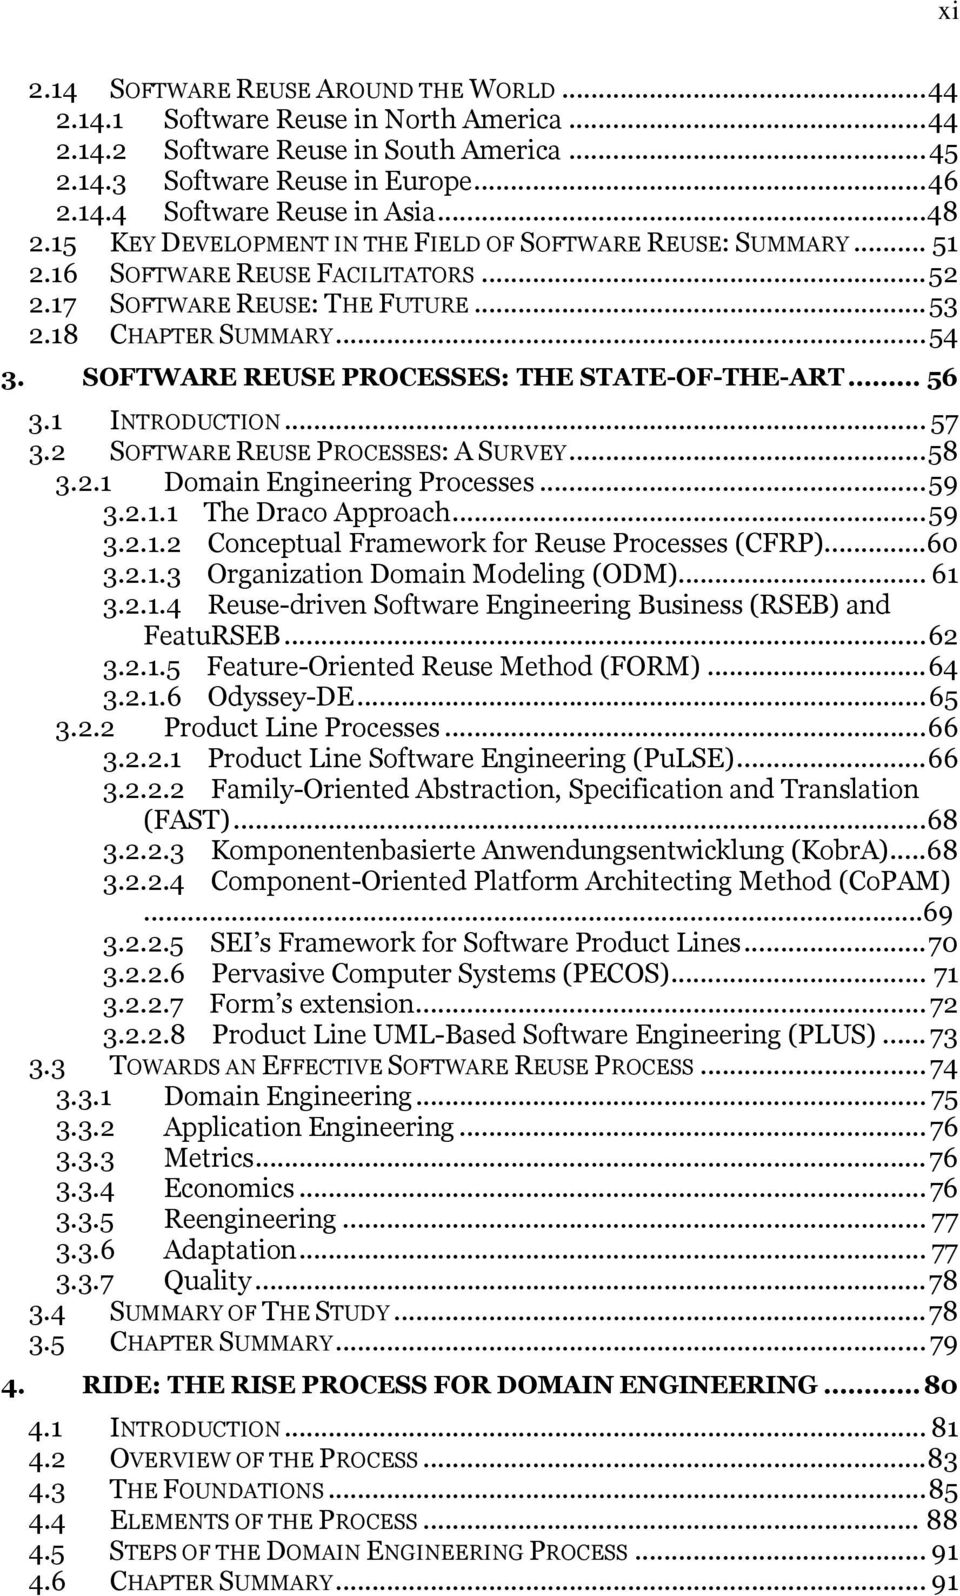 SOFTWARE REUSE PROCESSES: THE STATE-OF-THE-ART... 56 3.1 INTRODUCTION... 57 3.2 SOFTWARE REUSE PROCESSES: A SURVEY...58 3.2.1 Domain Engineering Processes...59 3.2.1.1 The Draco Approach...59 3.2.1.2 Conceptual Framework for Reuse Processes (CFRP).